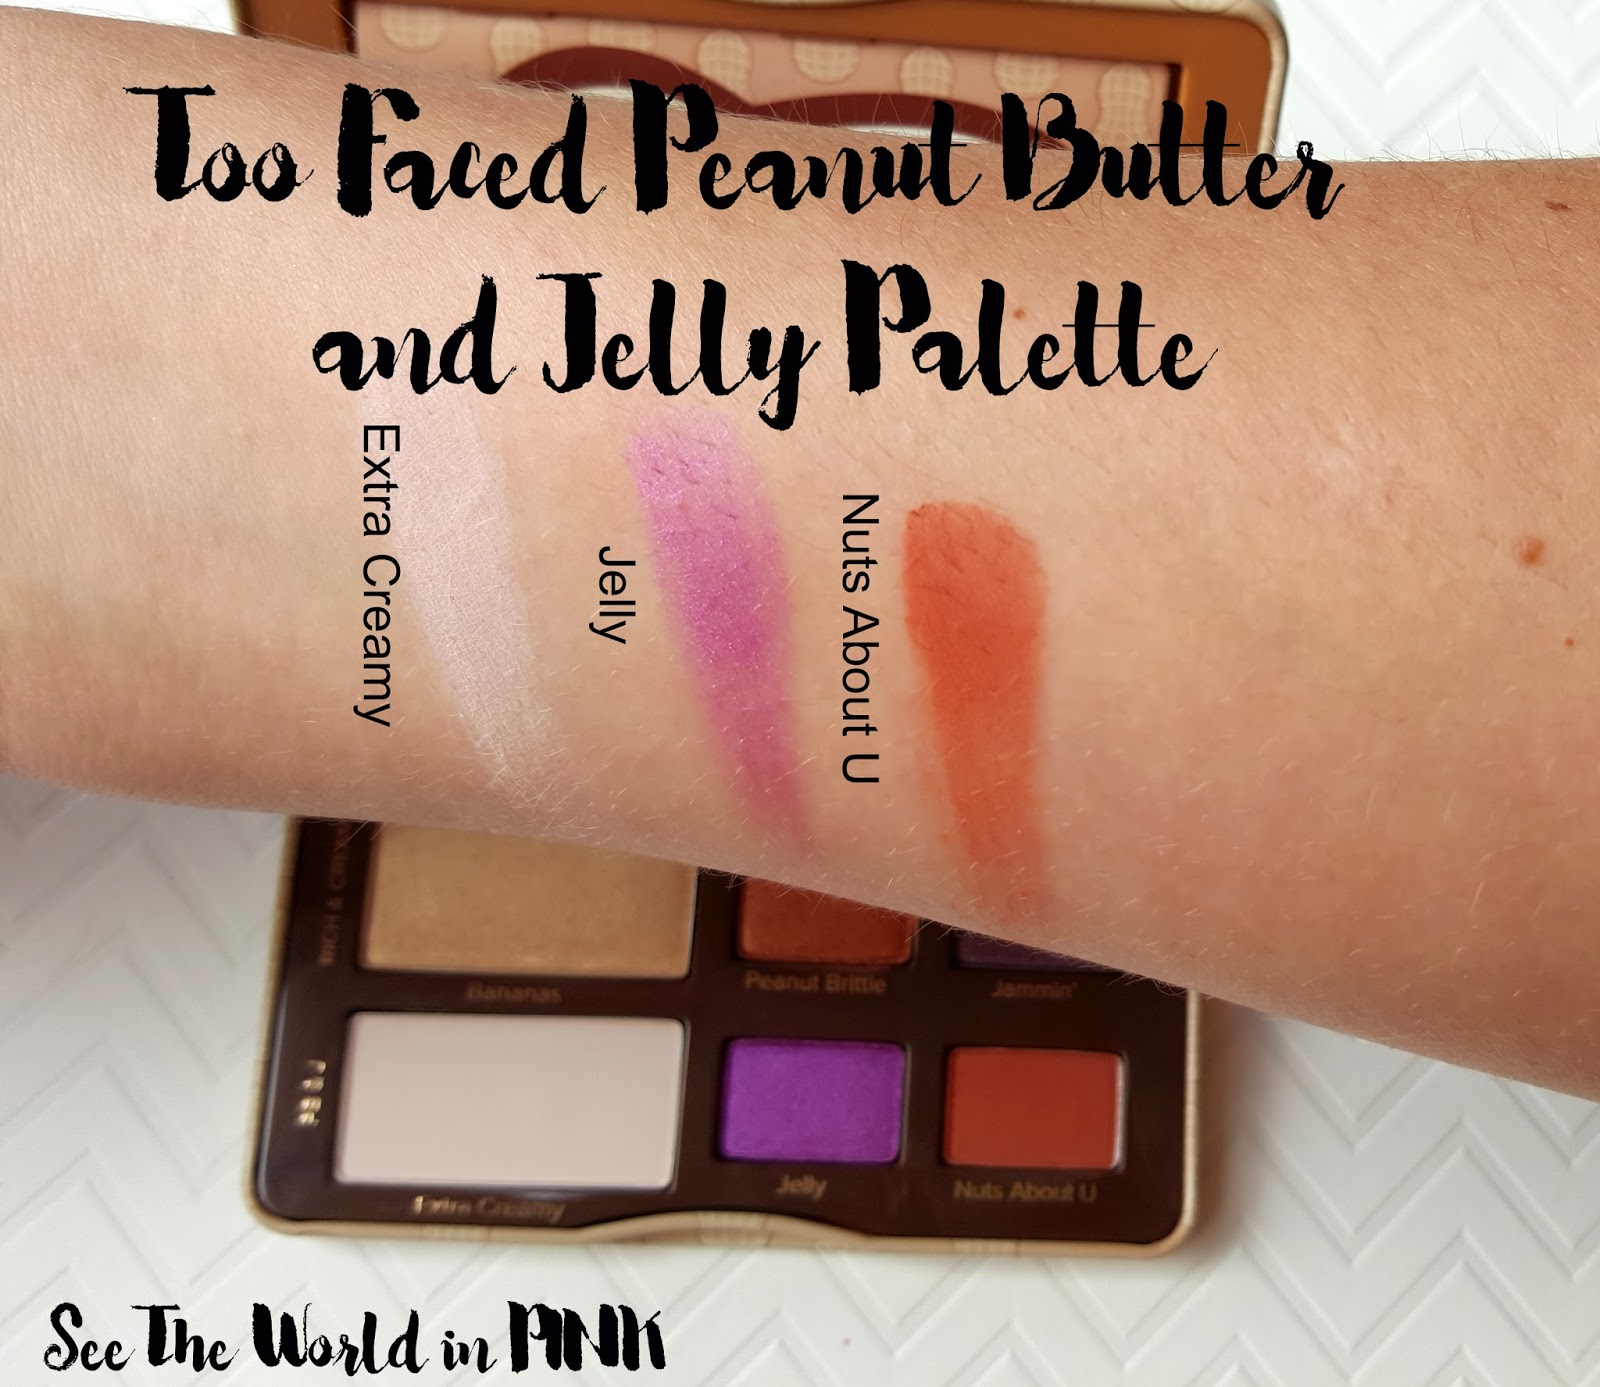 Too Faced Peanut Butter and Jelly Palette - Review, Swatches and a Makeup Look!